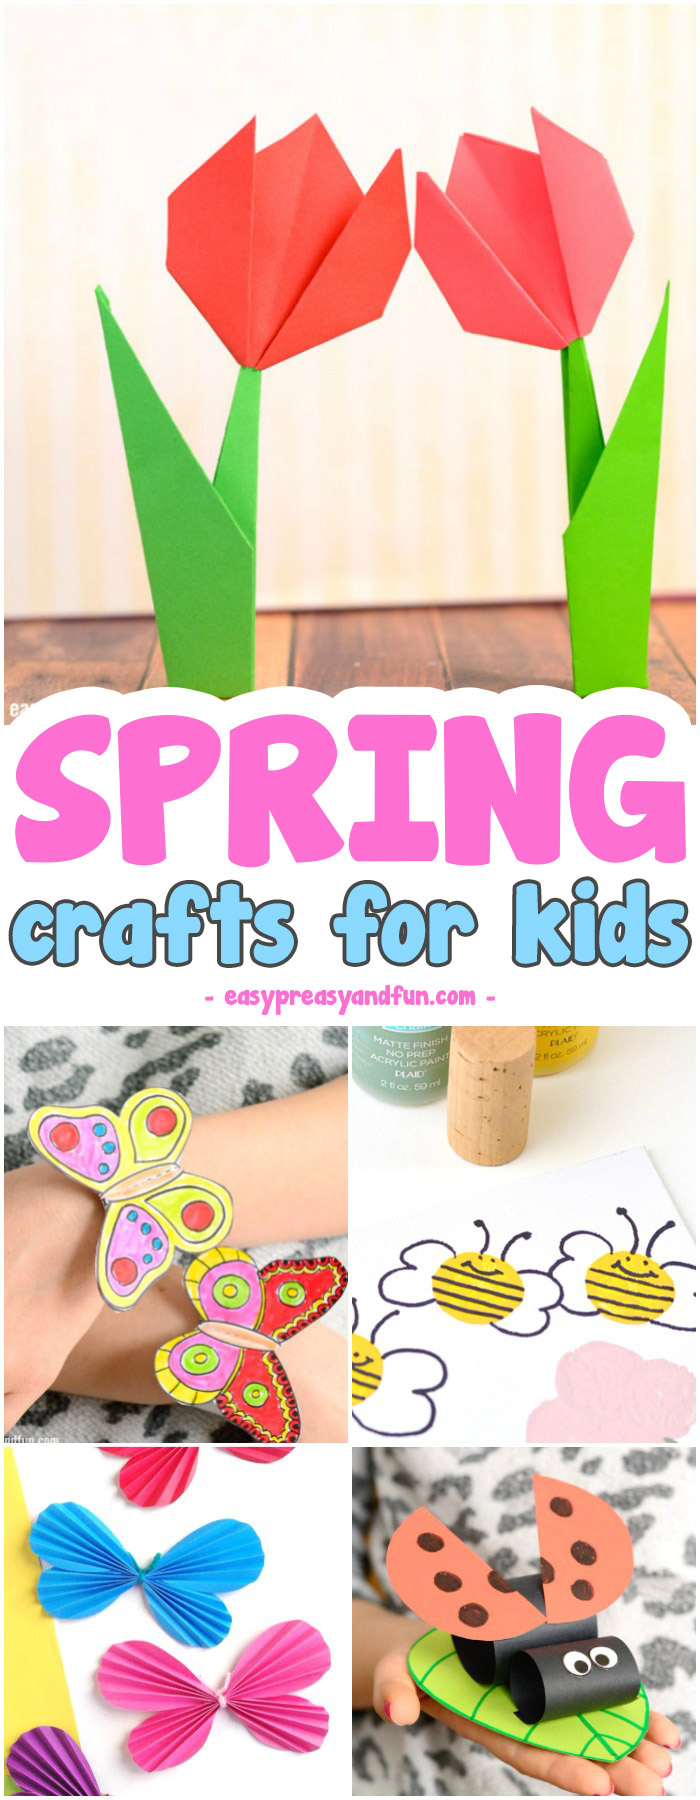 photo regarding Printable Kid Crafts called Spring Crafts for Youngsters - Artwork and Craft Task Tips for All